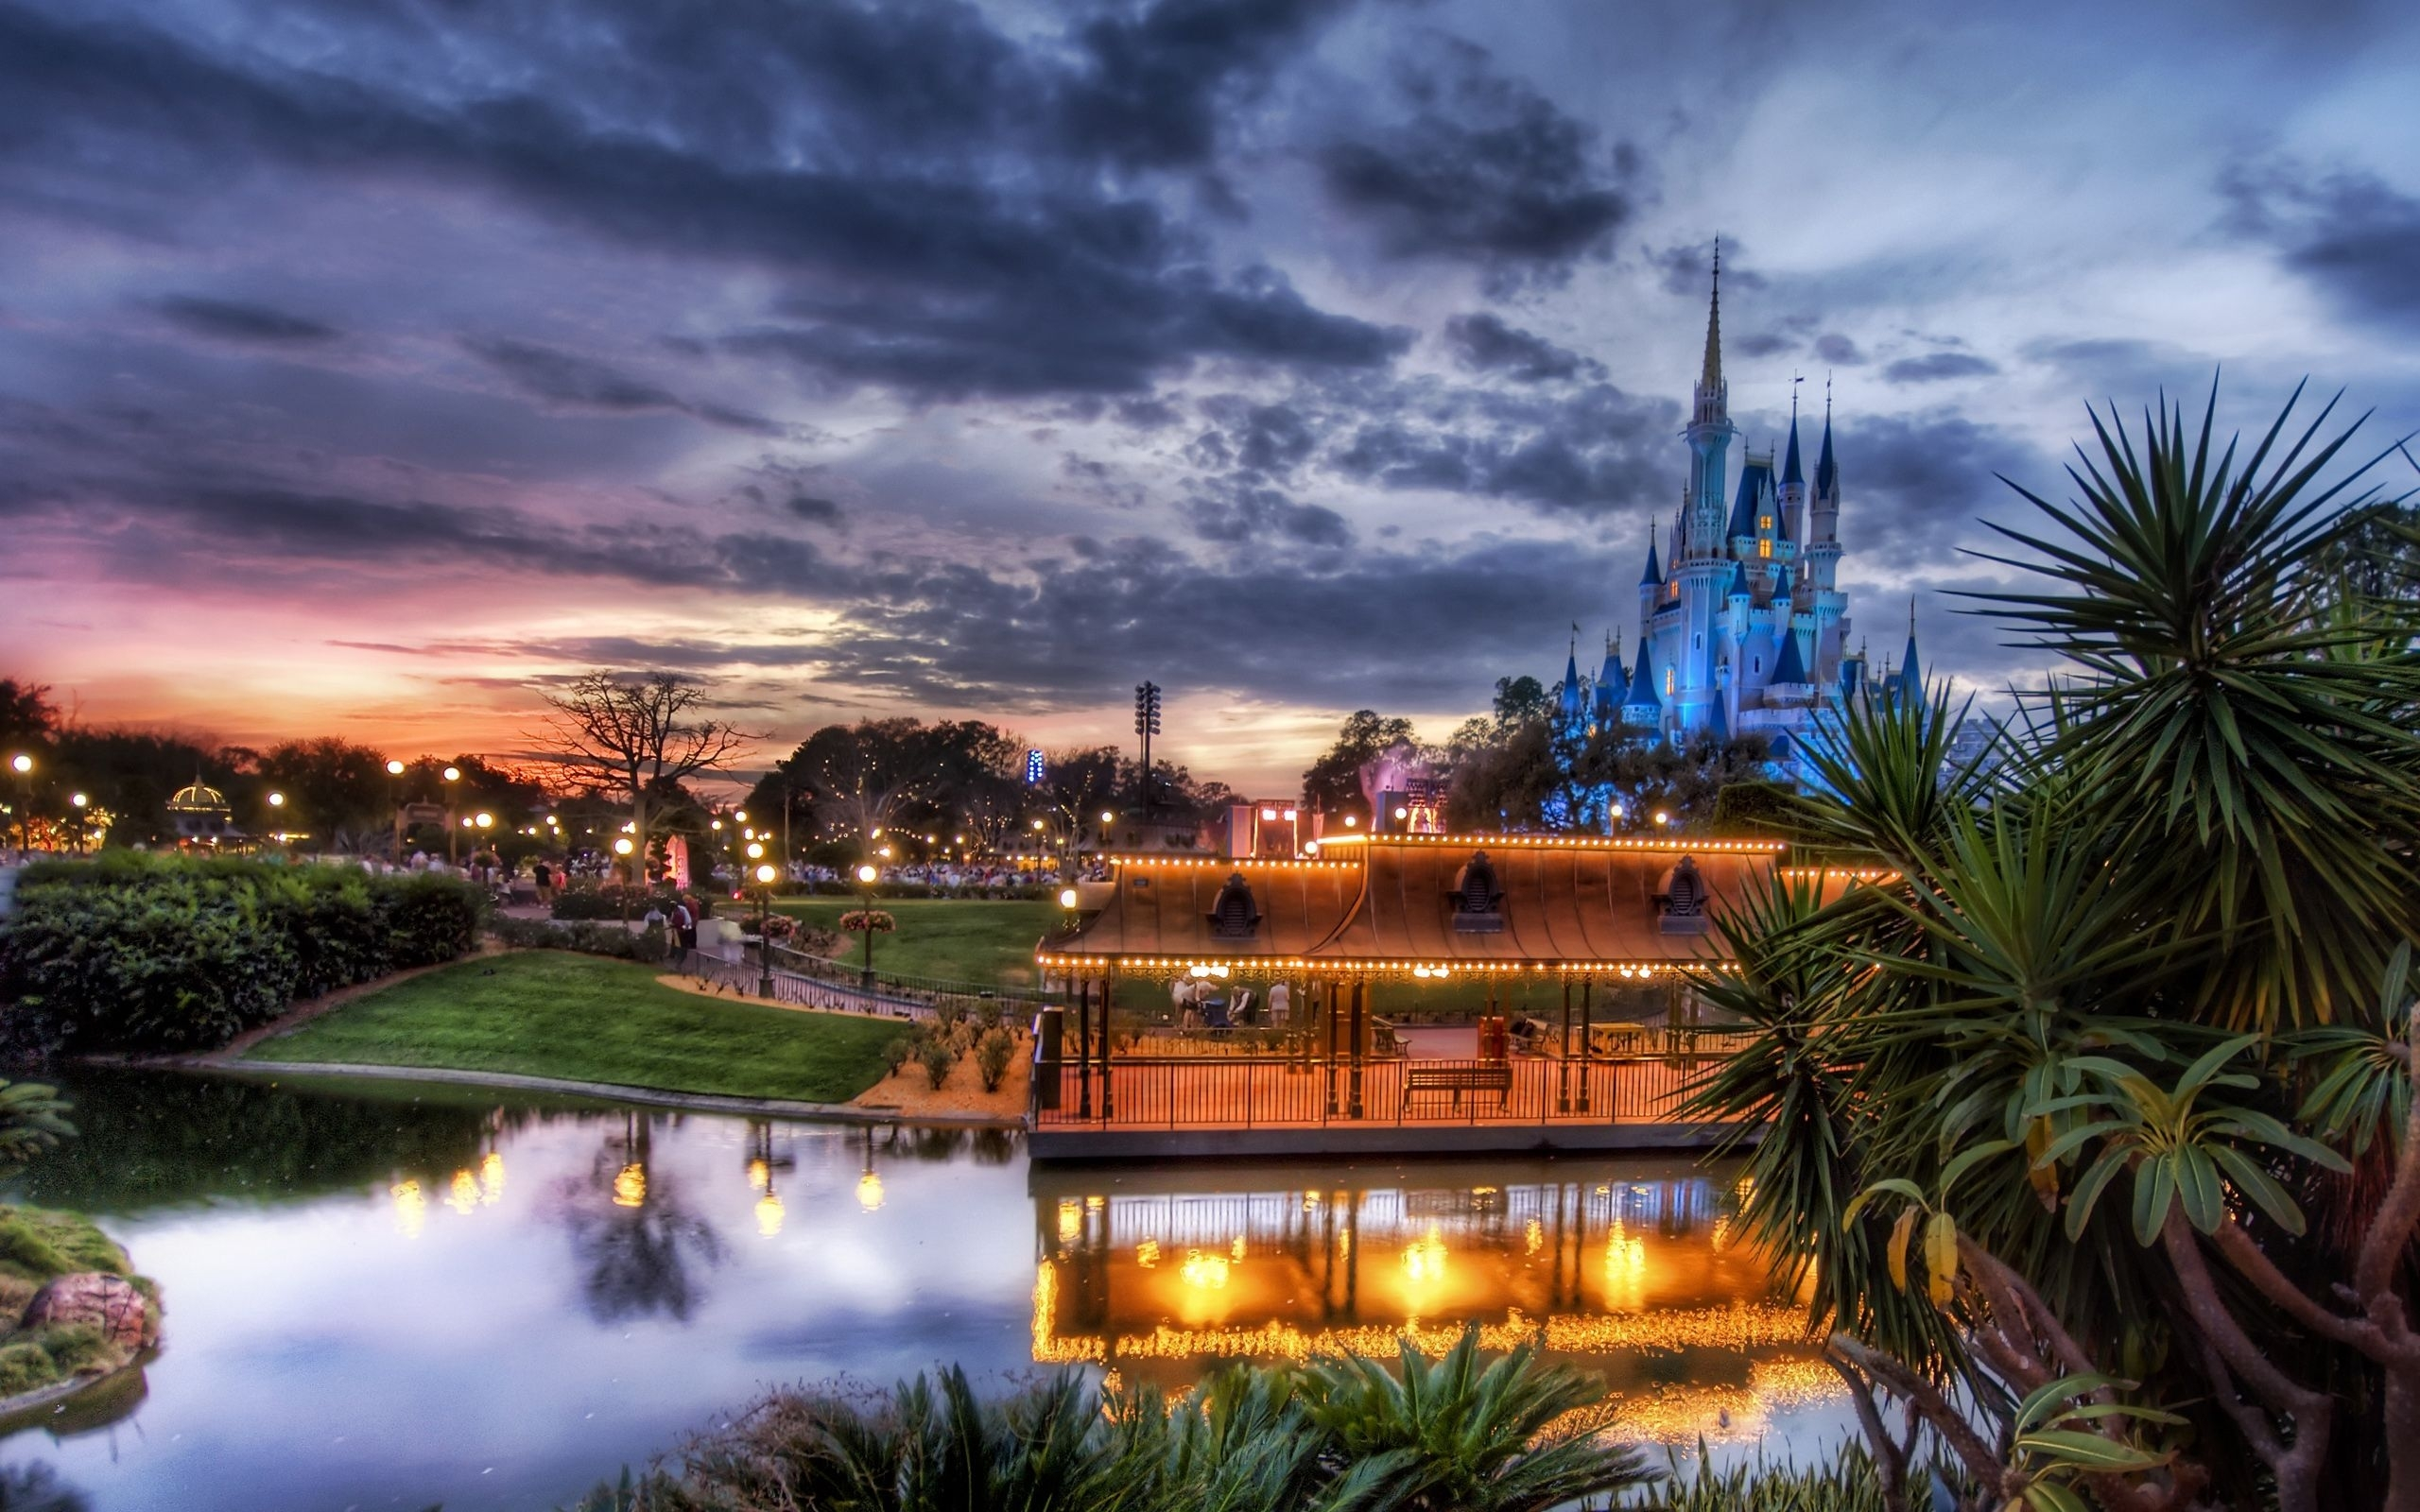 disney world hd wallpapers - this wallpaper